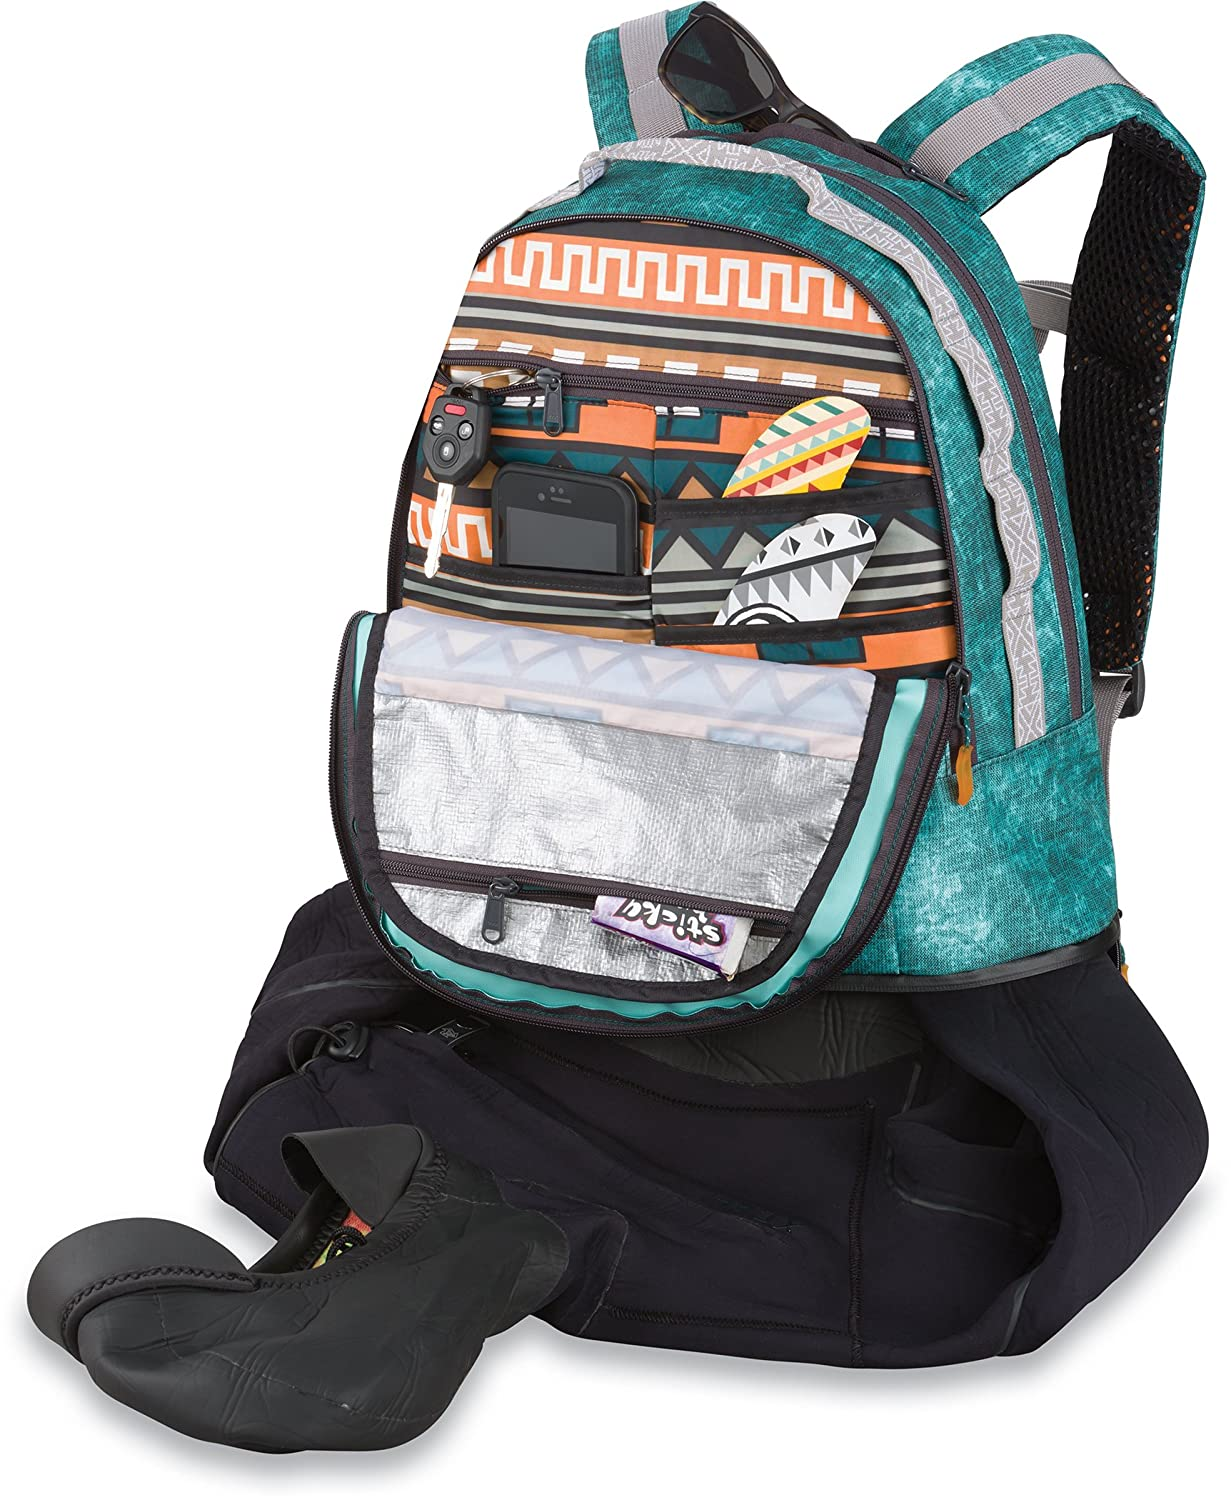 Amazon.com: Dakine Interval Wet/Dry Surf Backpack: Sports & Outdoors